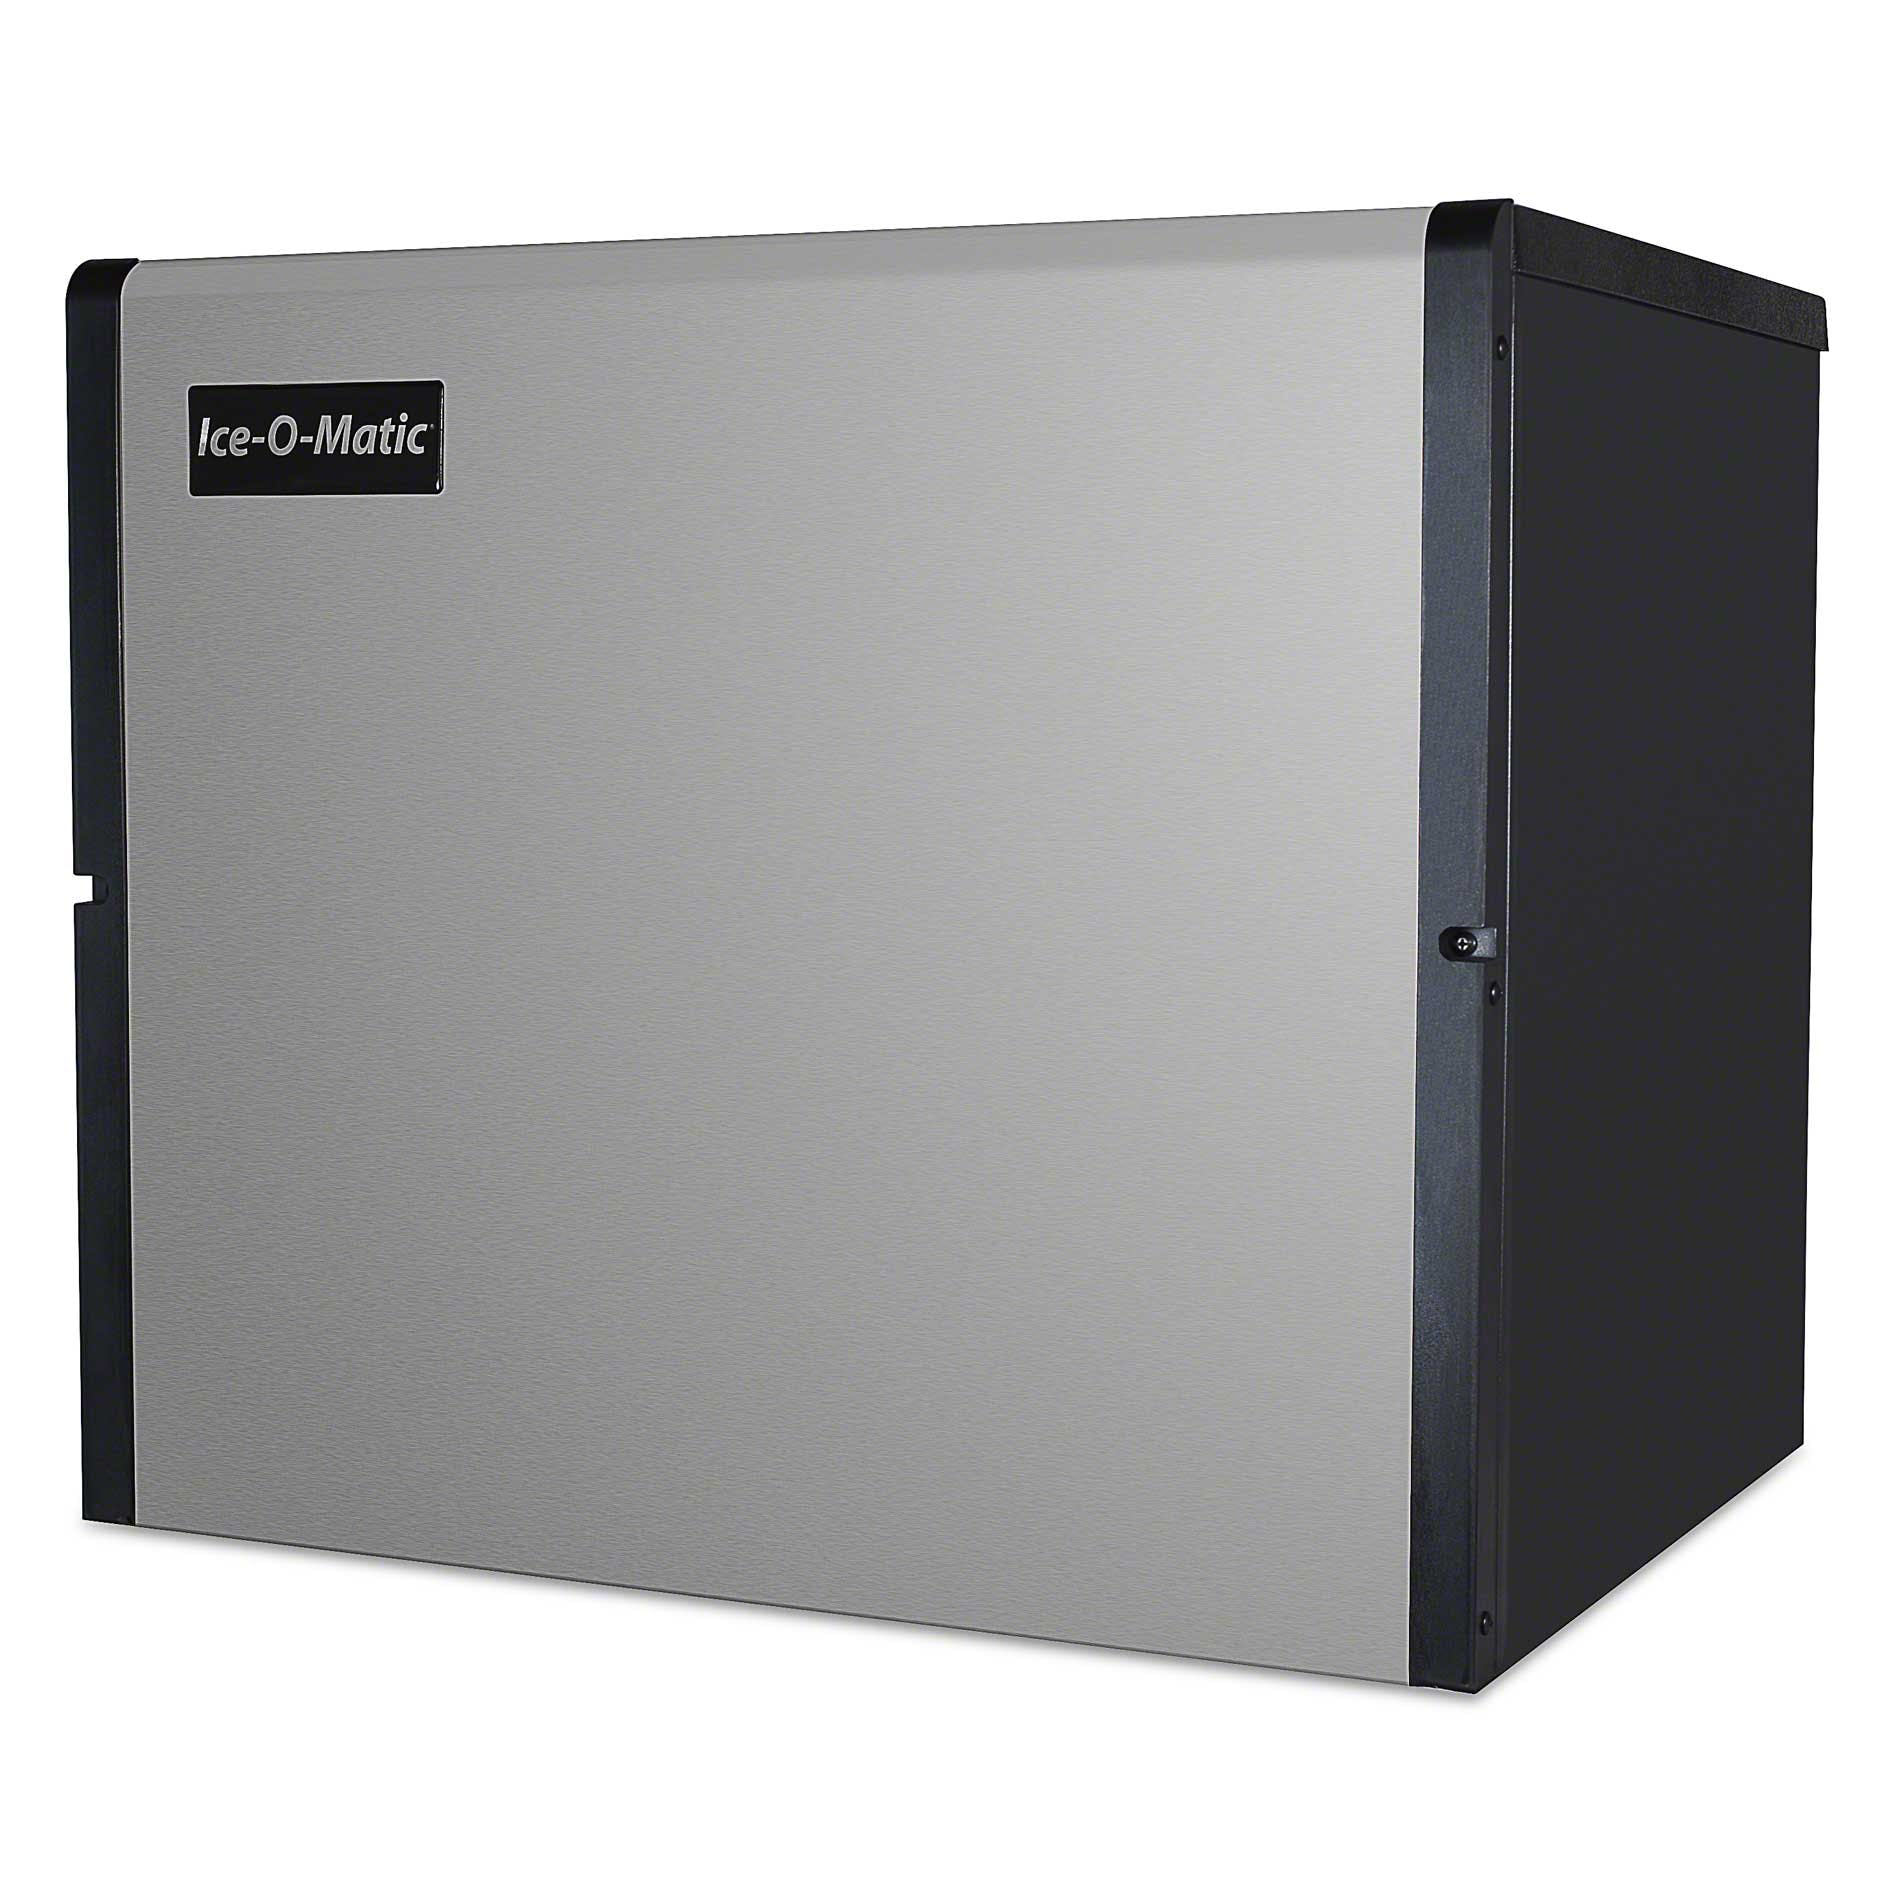 Ice-O-Matic - ICE0806FW 898 lb Full Cube Ice Machine Ice machine sold by Food Service Warehouse